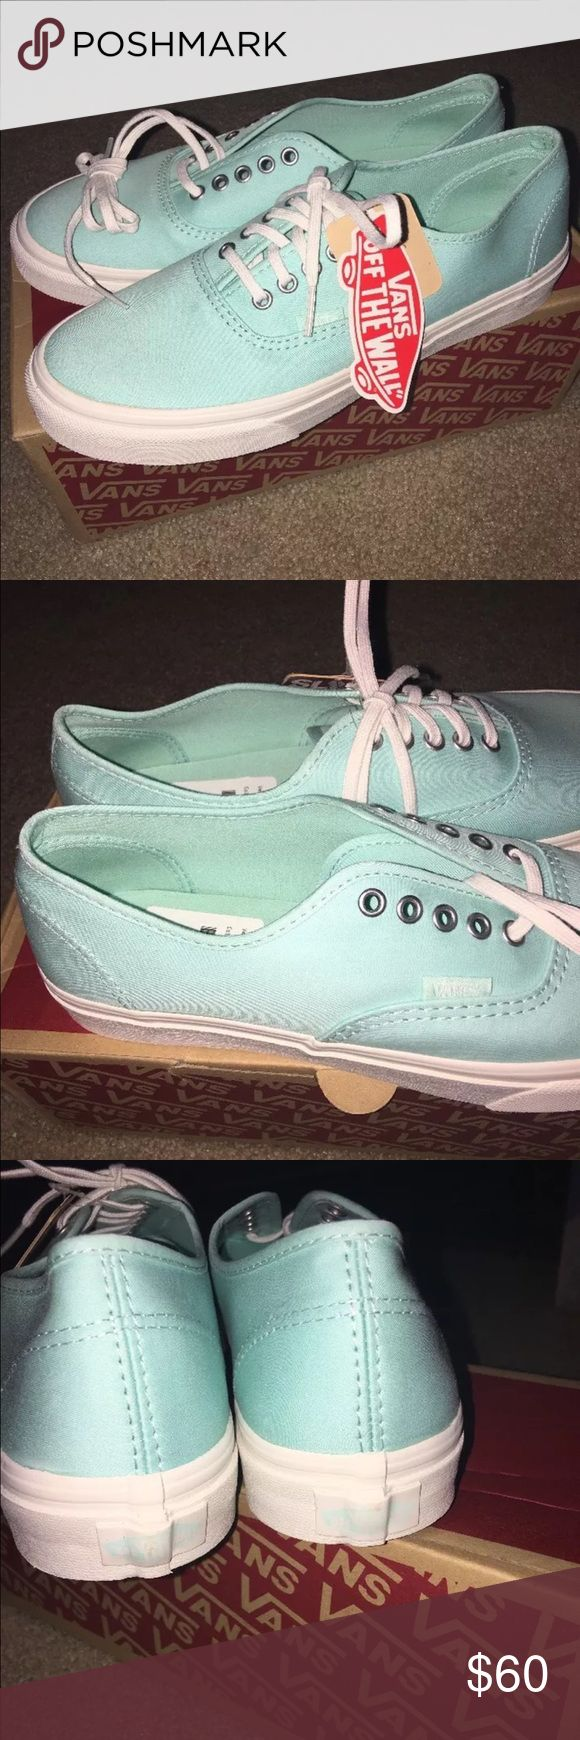 BNIB Vans Tiffany Blue Shoes women's size 9 Gorgeous Tiffany blue Vans in a women's size 9, men's size 7.5. Brand new in box, I never wore them. Can do $50 + ship on 🅿️🅿️, what I paid. Vans Shoes Athletic Shoes